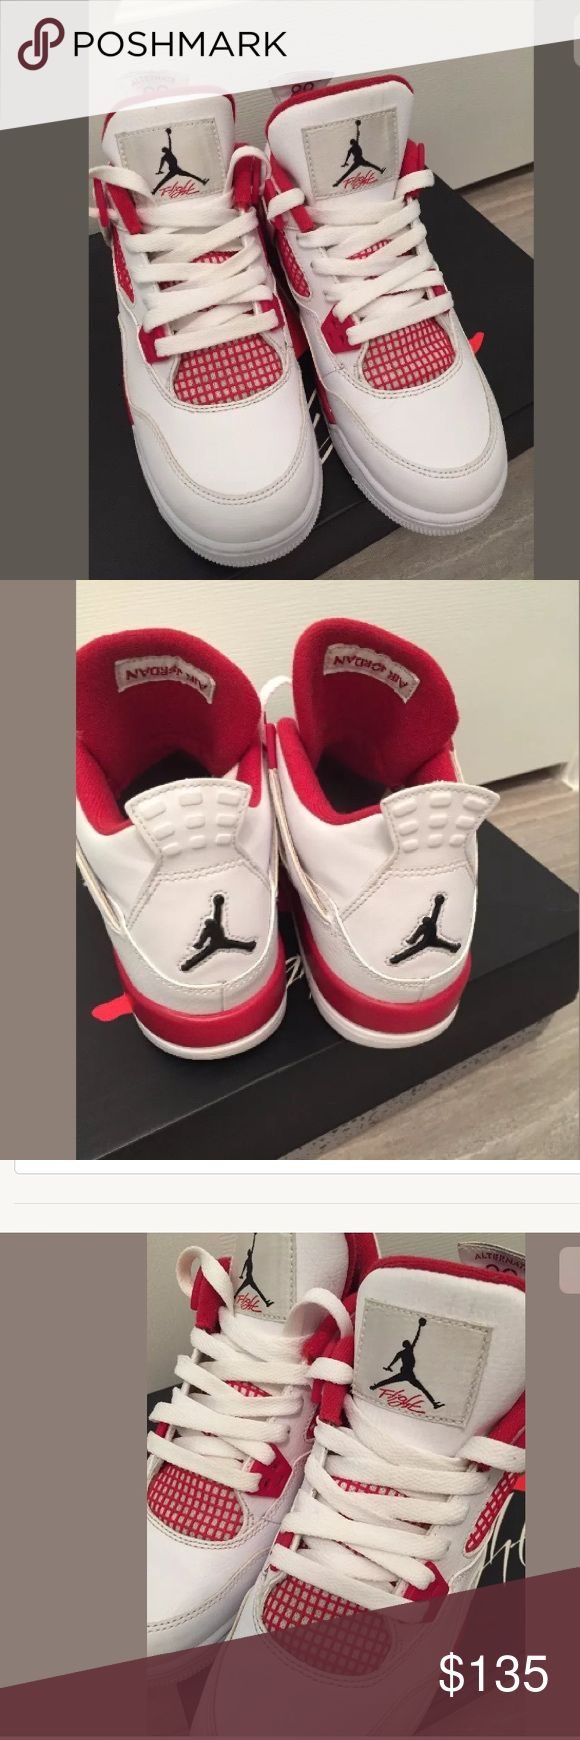 Air Jordan alternate 89 youth 5 Red white air Jordan RETRO alternate 89. Very very good condition. Barely worn and stored in box. Clean ready to ship! Size 5 y air jordan Shoes Sneakers